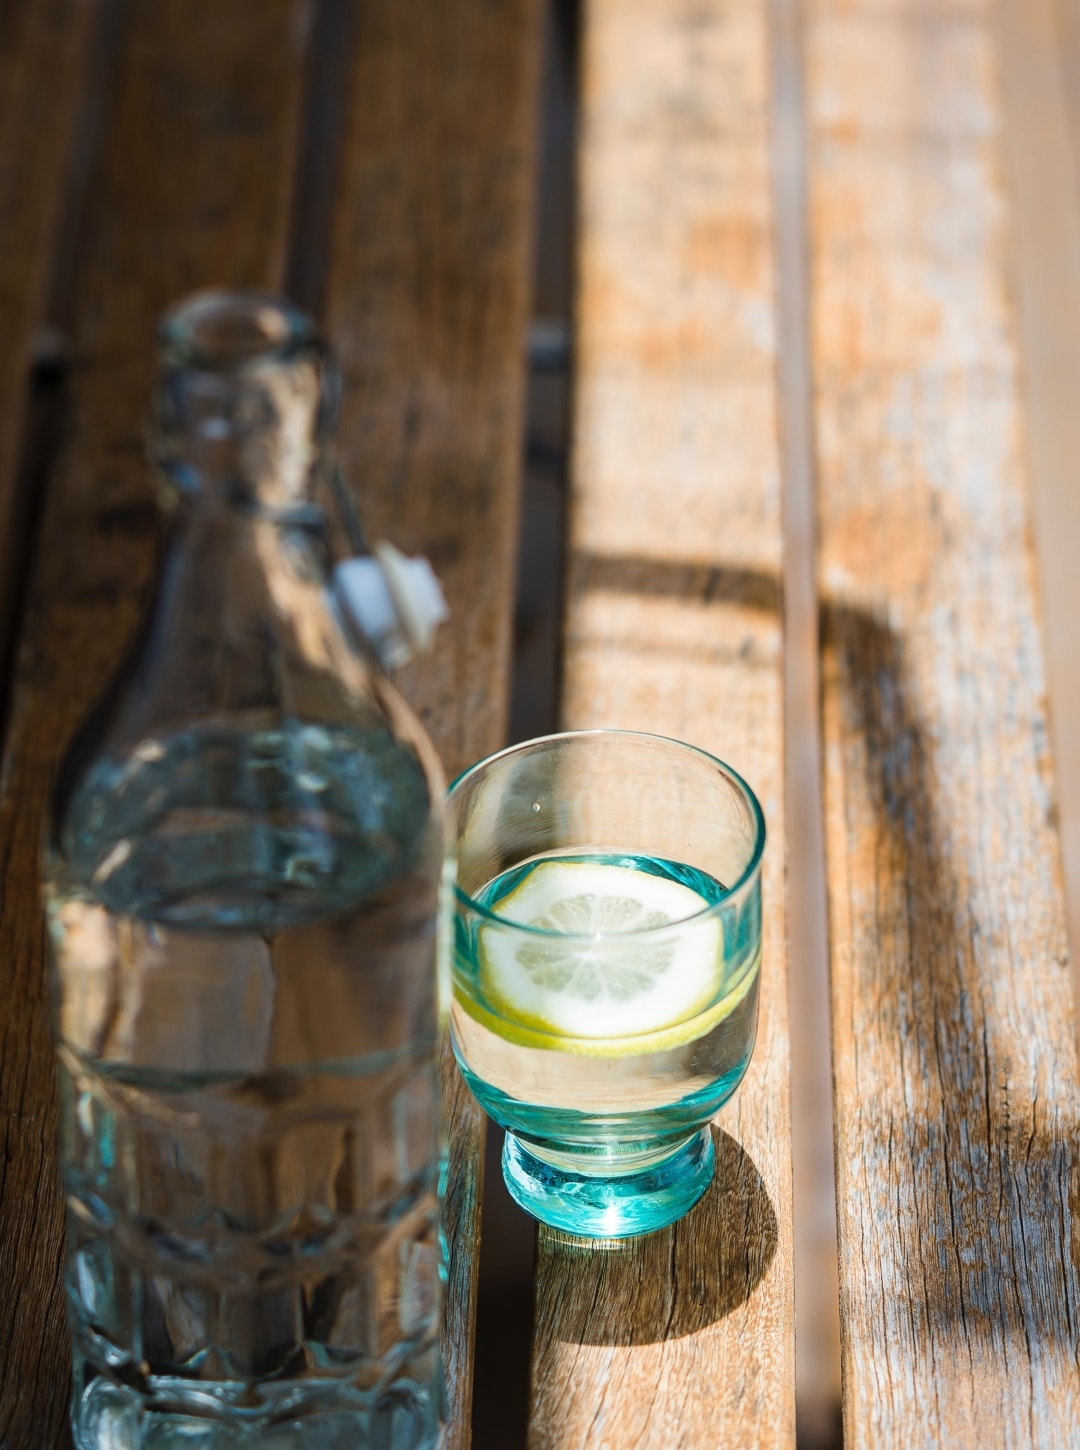 A photograph of a carafe and a glass of water on a wooden table - 7 Simple But Effective Ways To Ensure A Good Mental Health Day - Mrs H's favourite things